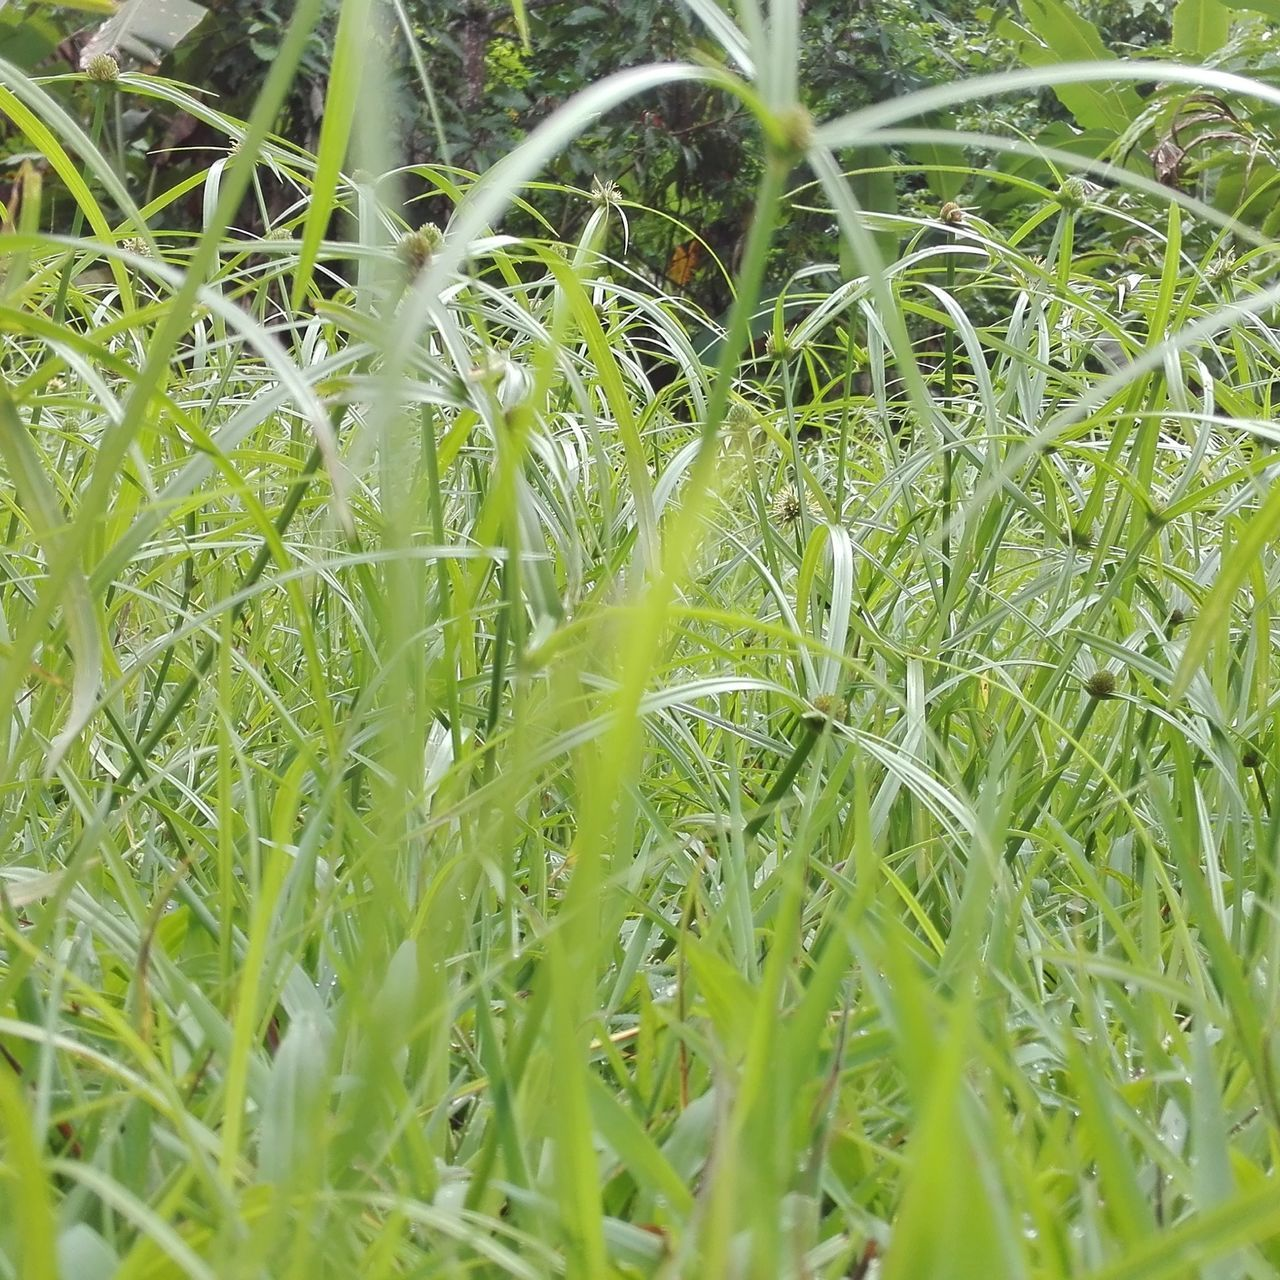 grass, growth, green color, plant, field, nature, close-up, no people, day, outdoors, full frame, beauty in nature, freshness